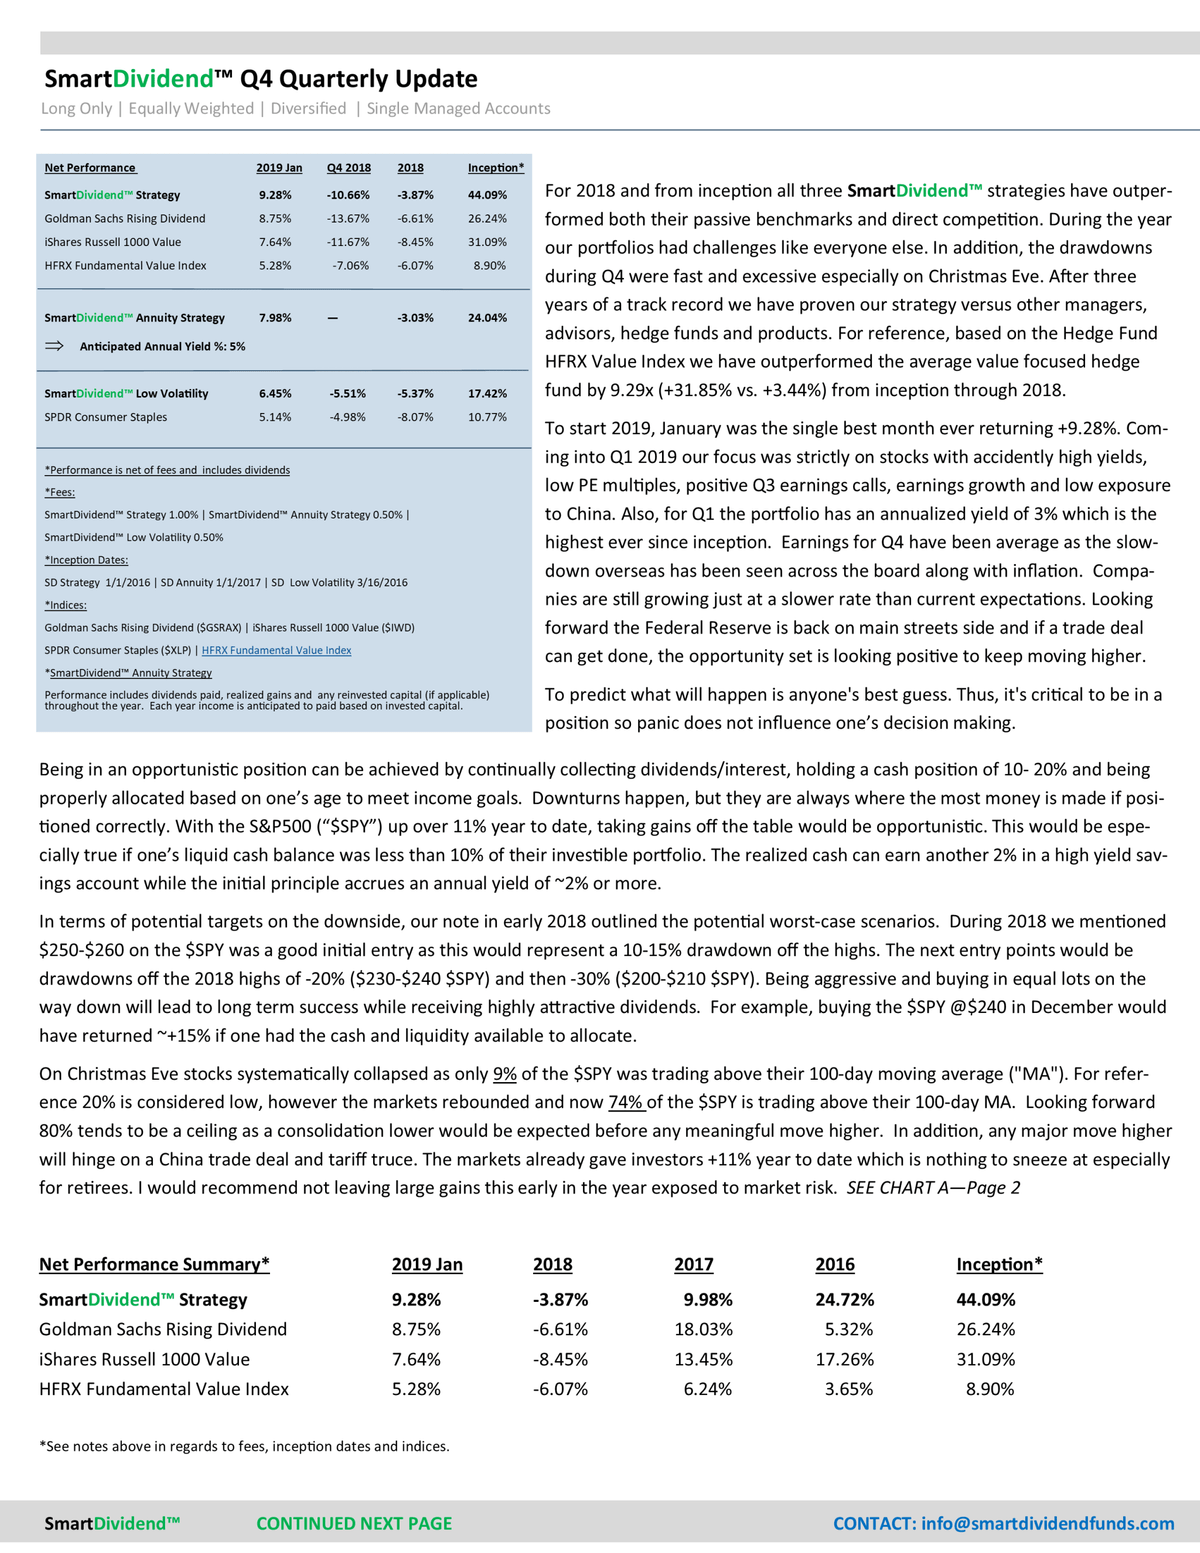 SmartDividend™ Q4 Update Page 1 of 2